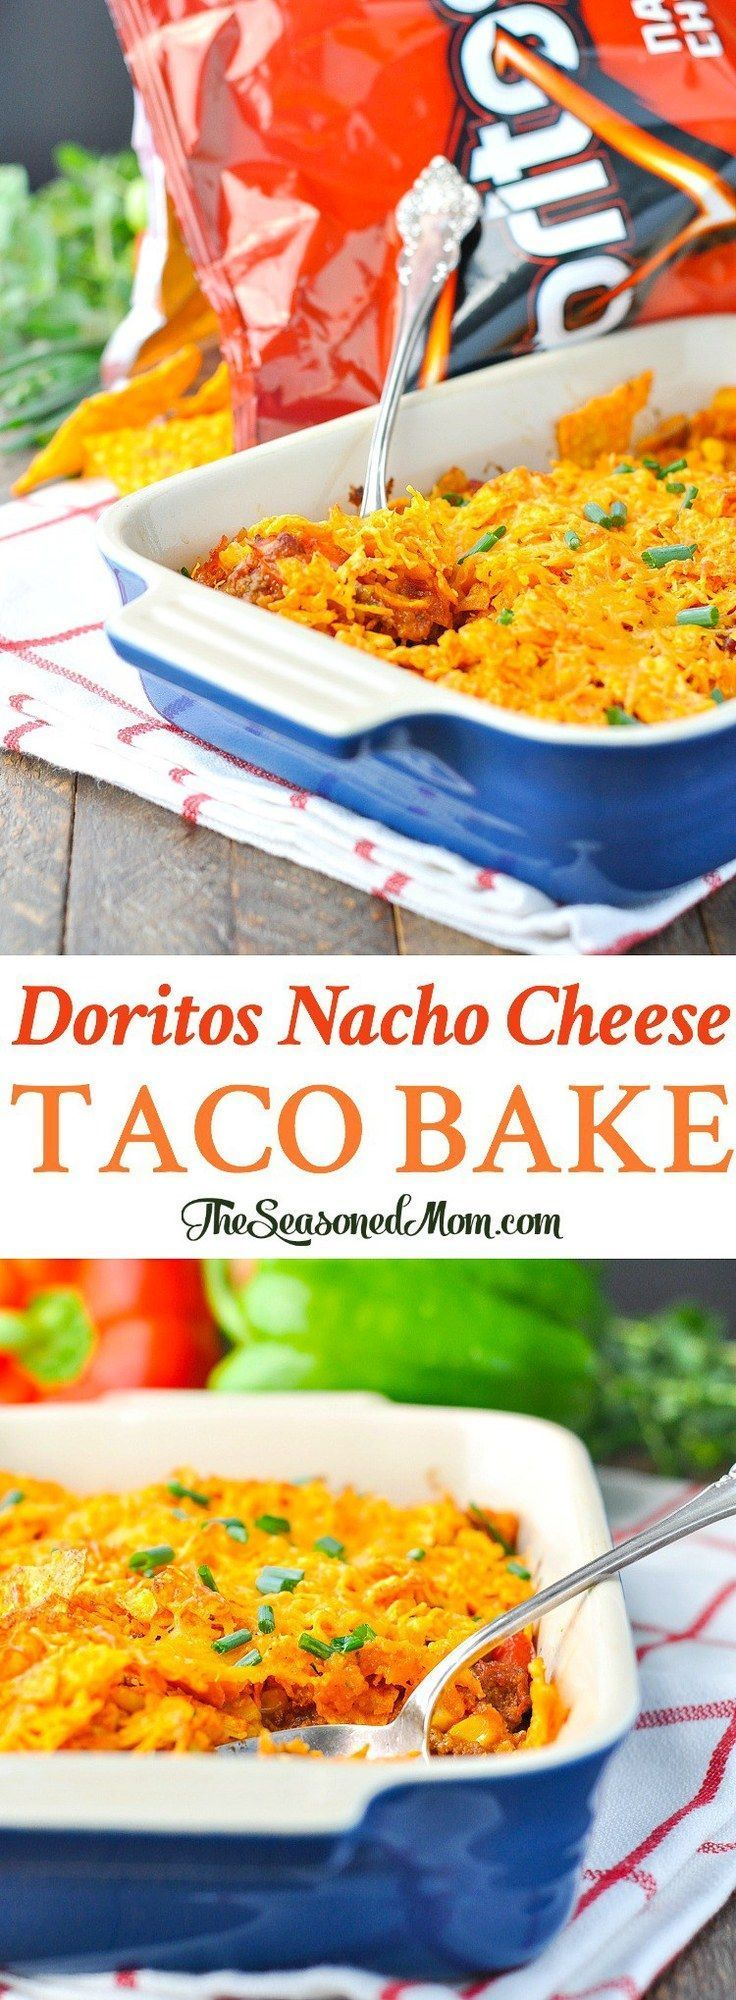 An easy twist on Mexican food for dinner, this Doritos Nacho Cheese Taco Bake is a fun casserole that will make your family smile! Lean ground taco meat and veggies are topped with shredded cheese and crumbled Doritos tortilla chips for a delicious, flavorful, and simple one dish meal! #recipeswithgroundbeef